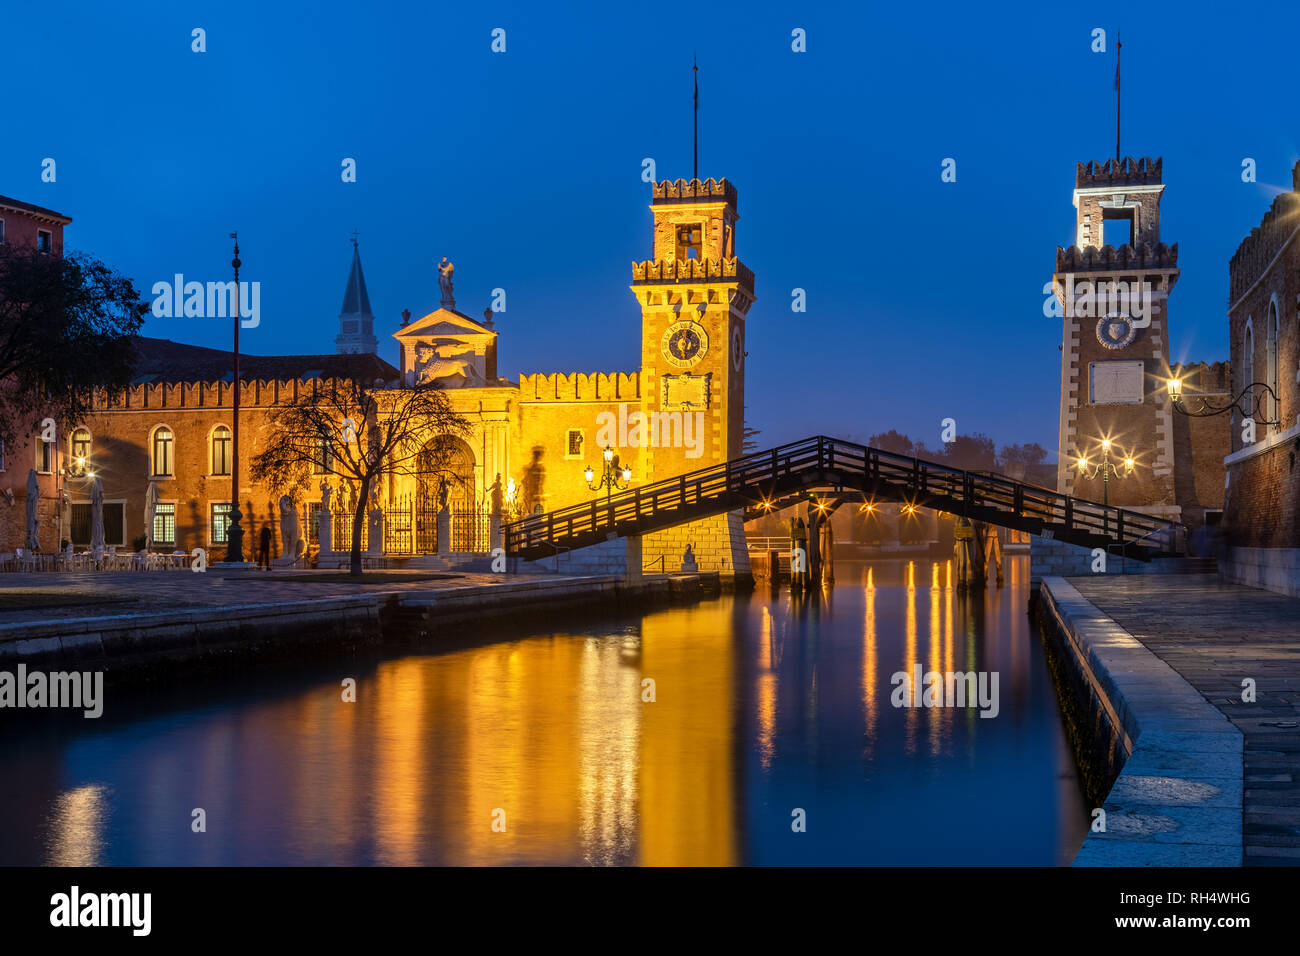 The Arsenale during the blue hour, Venice, Italy - Stock Image